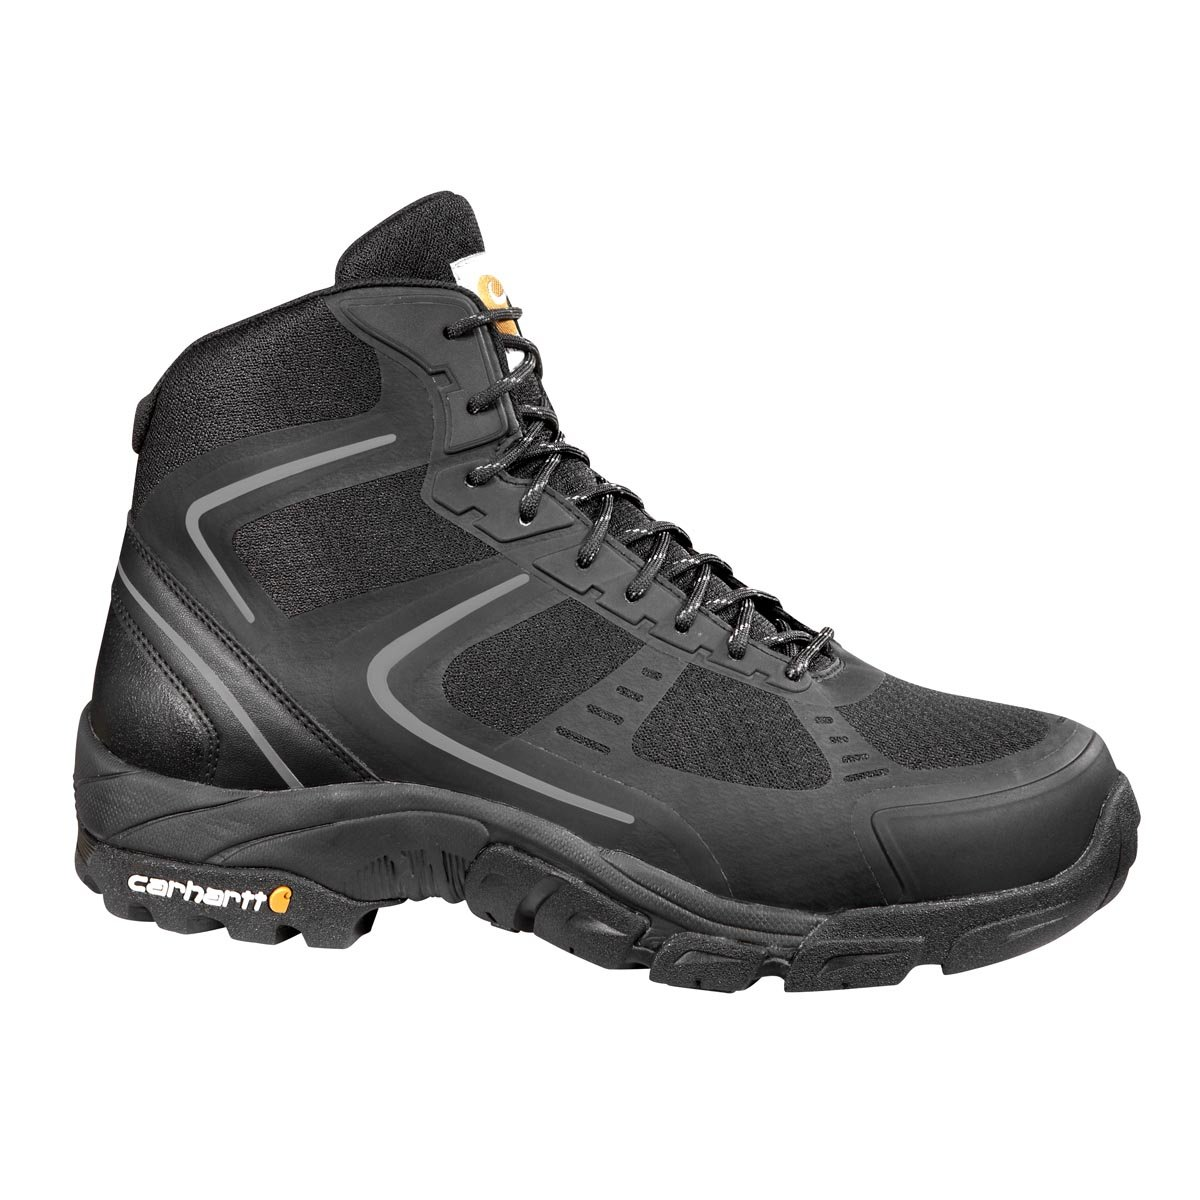 Carhartt Men's CMH4251 6'' Lightweight FastDry Technology Steel Toe Hiker Boot, Black Mesh and Synthetic, 12 M US